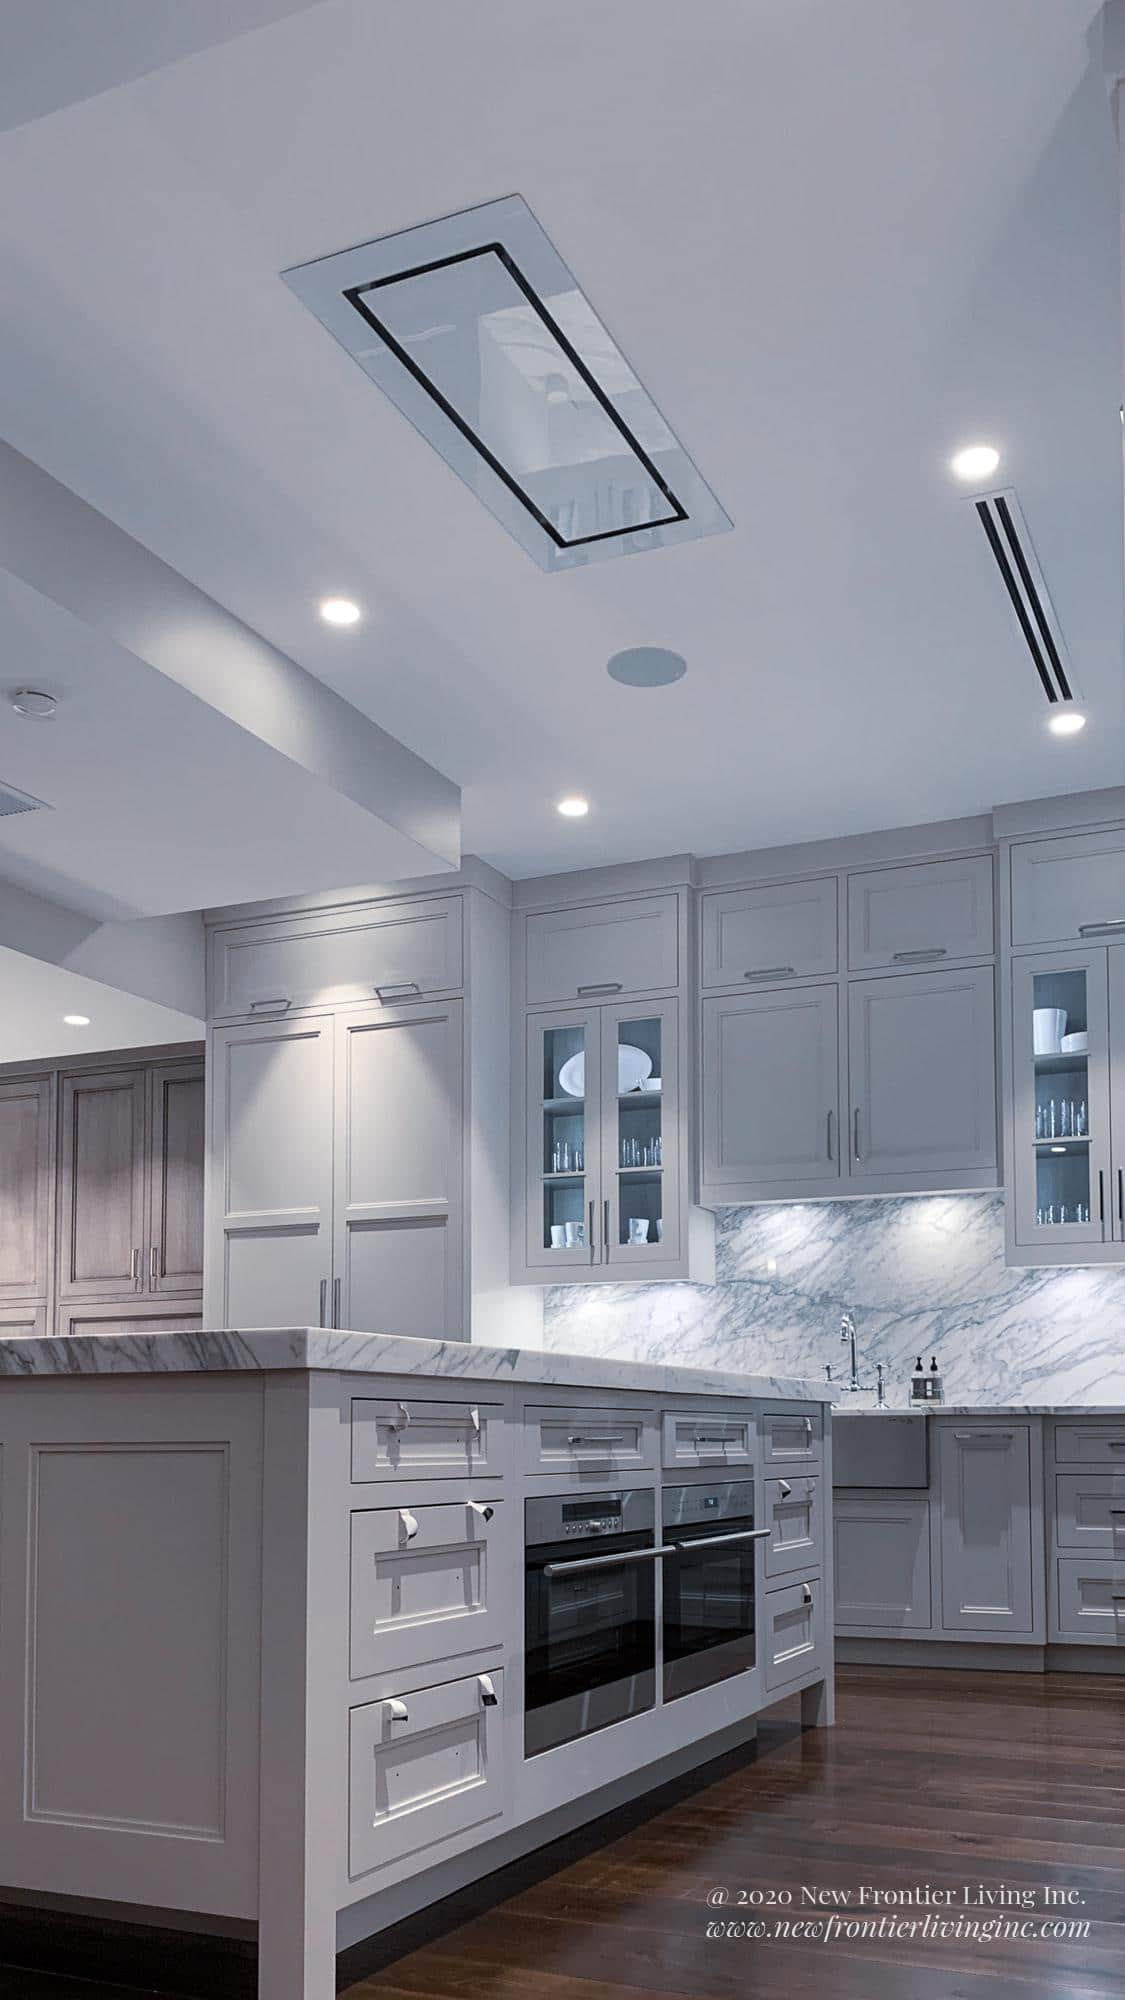 Pure white kitchen island with an oven and microwave at the bottom cabinets